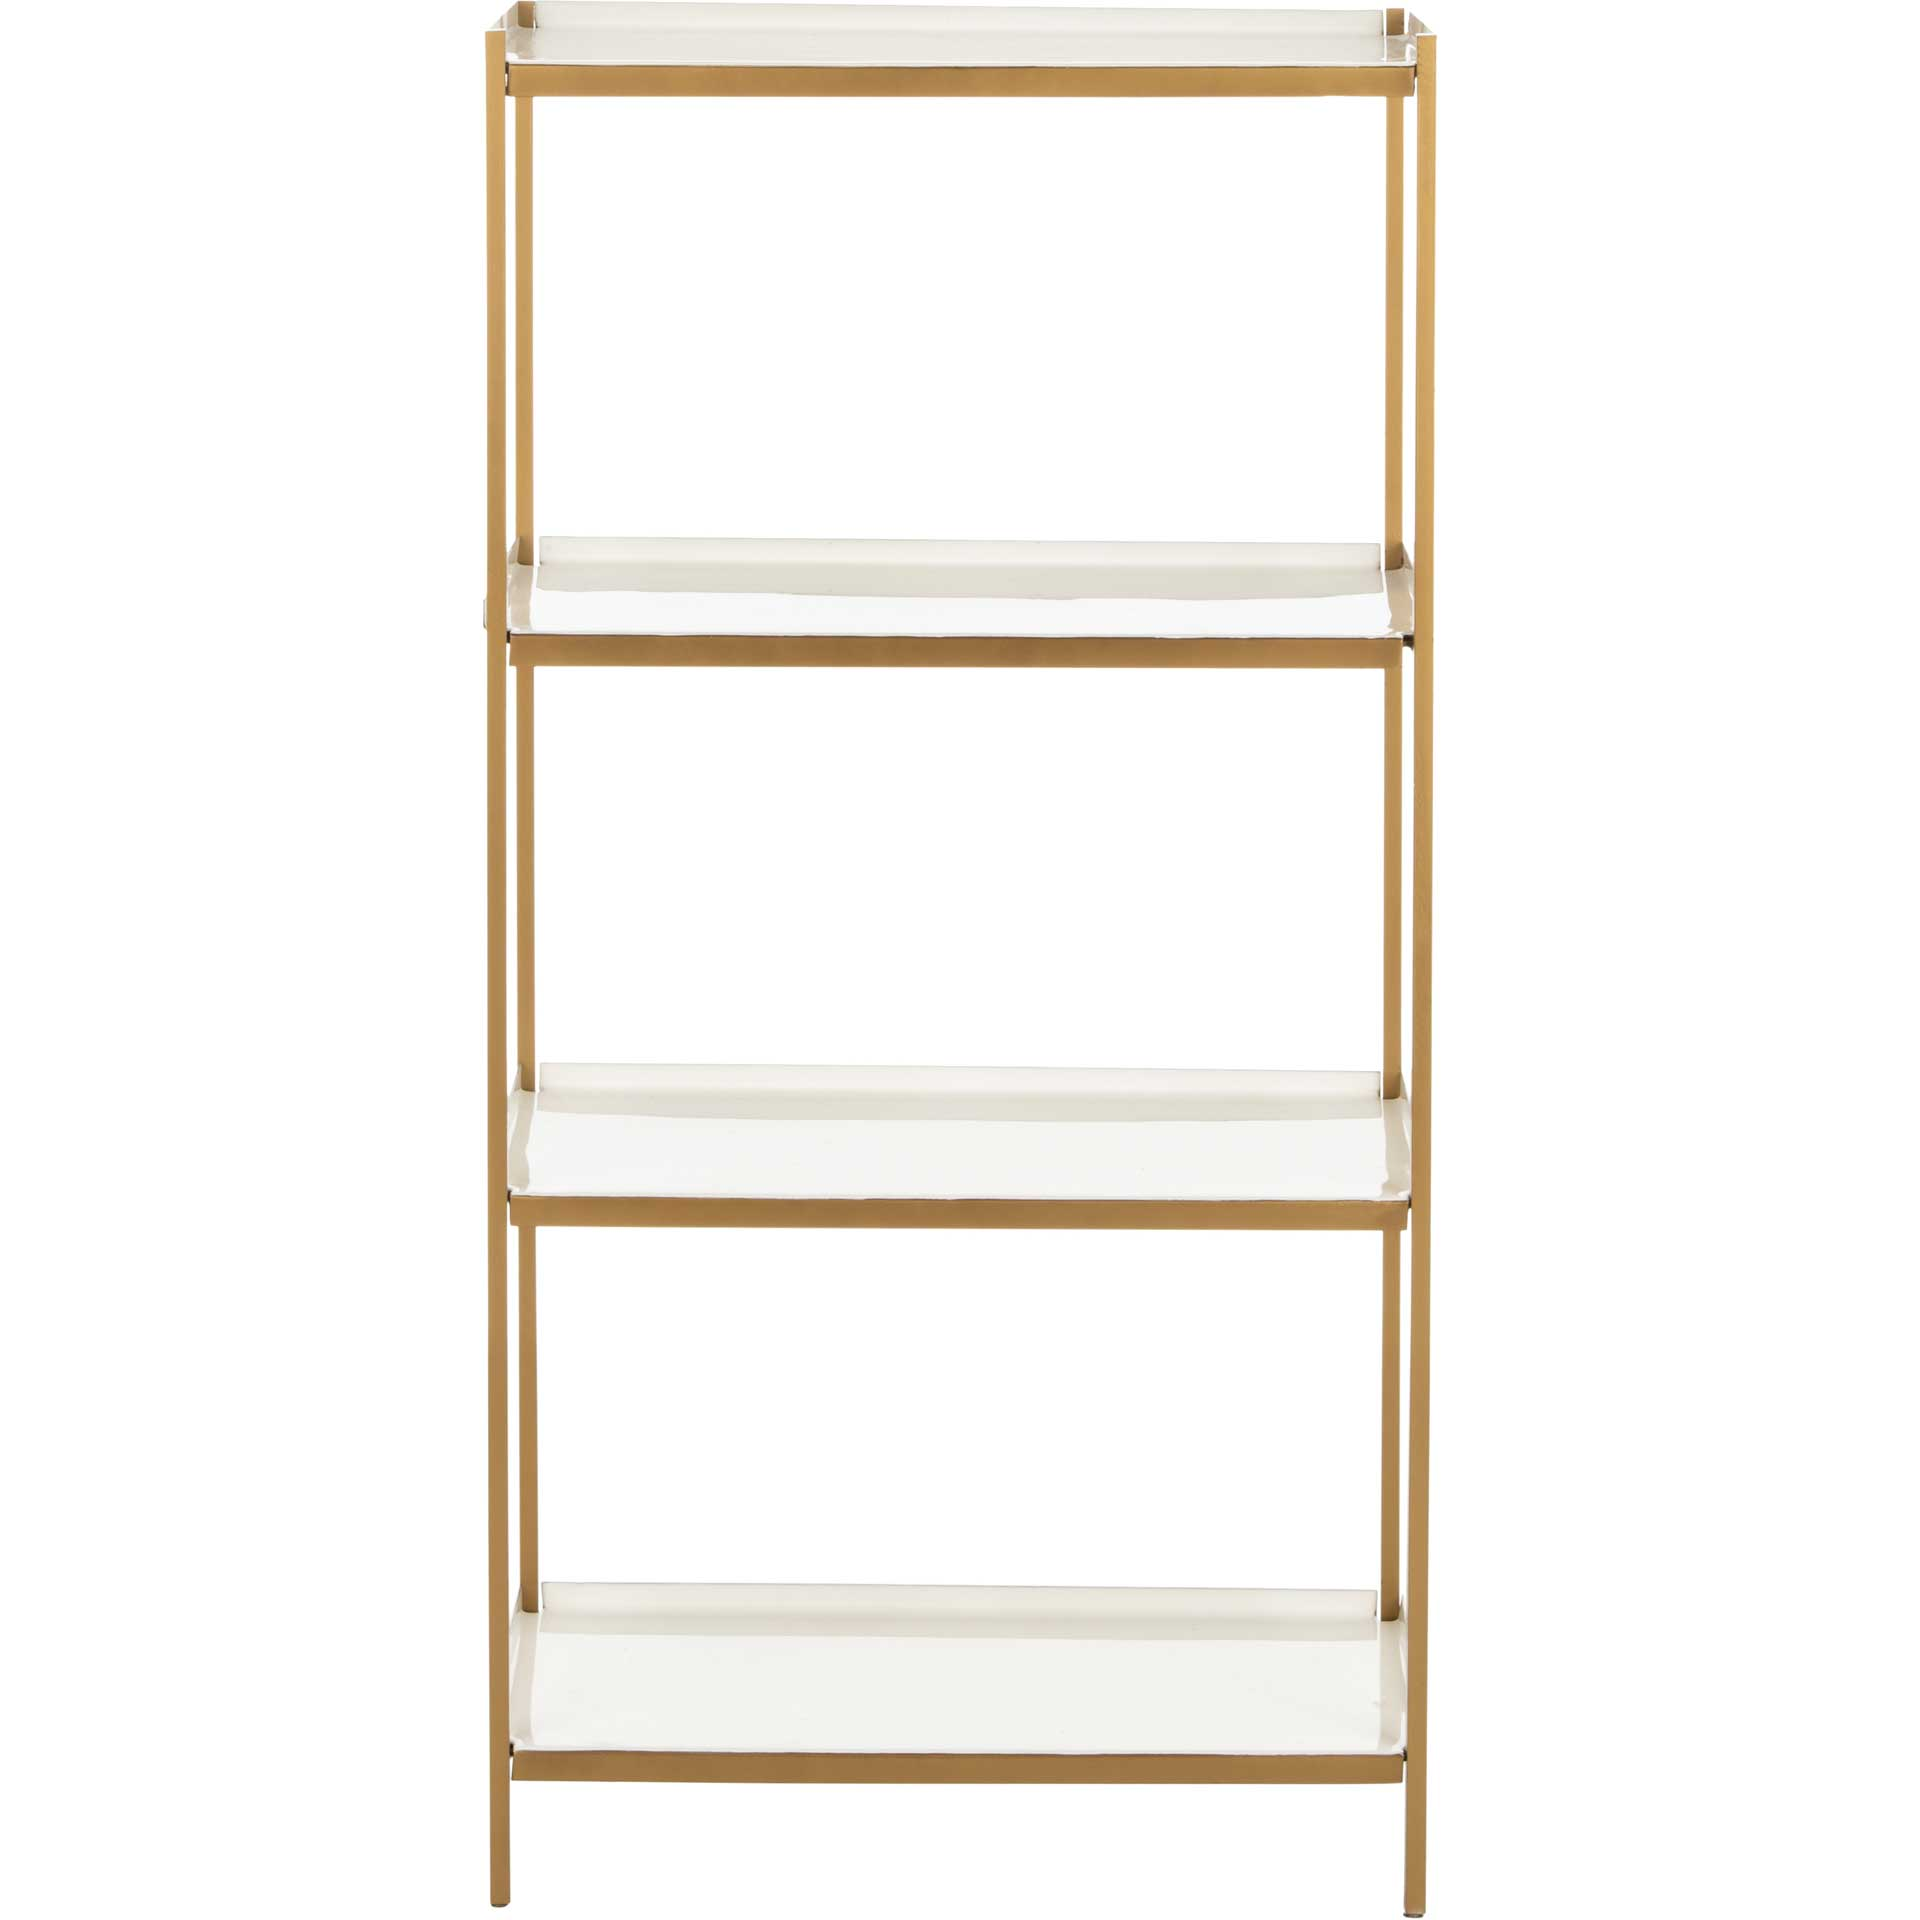 Darby 4 Tier Etagere White/Brass